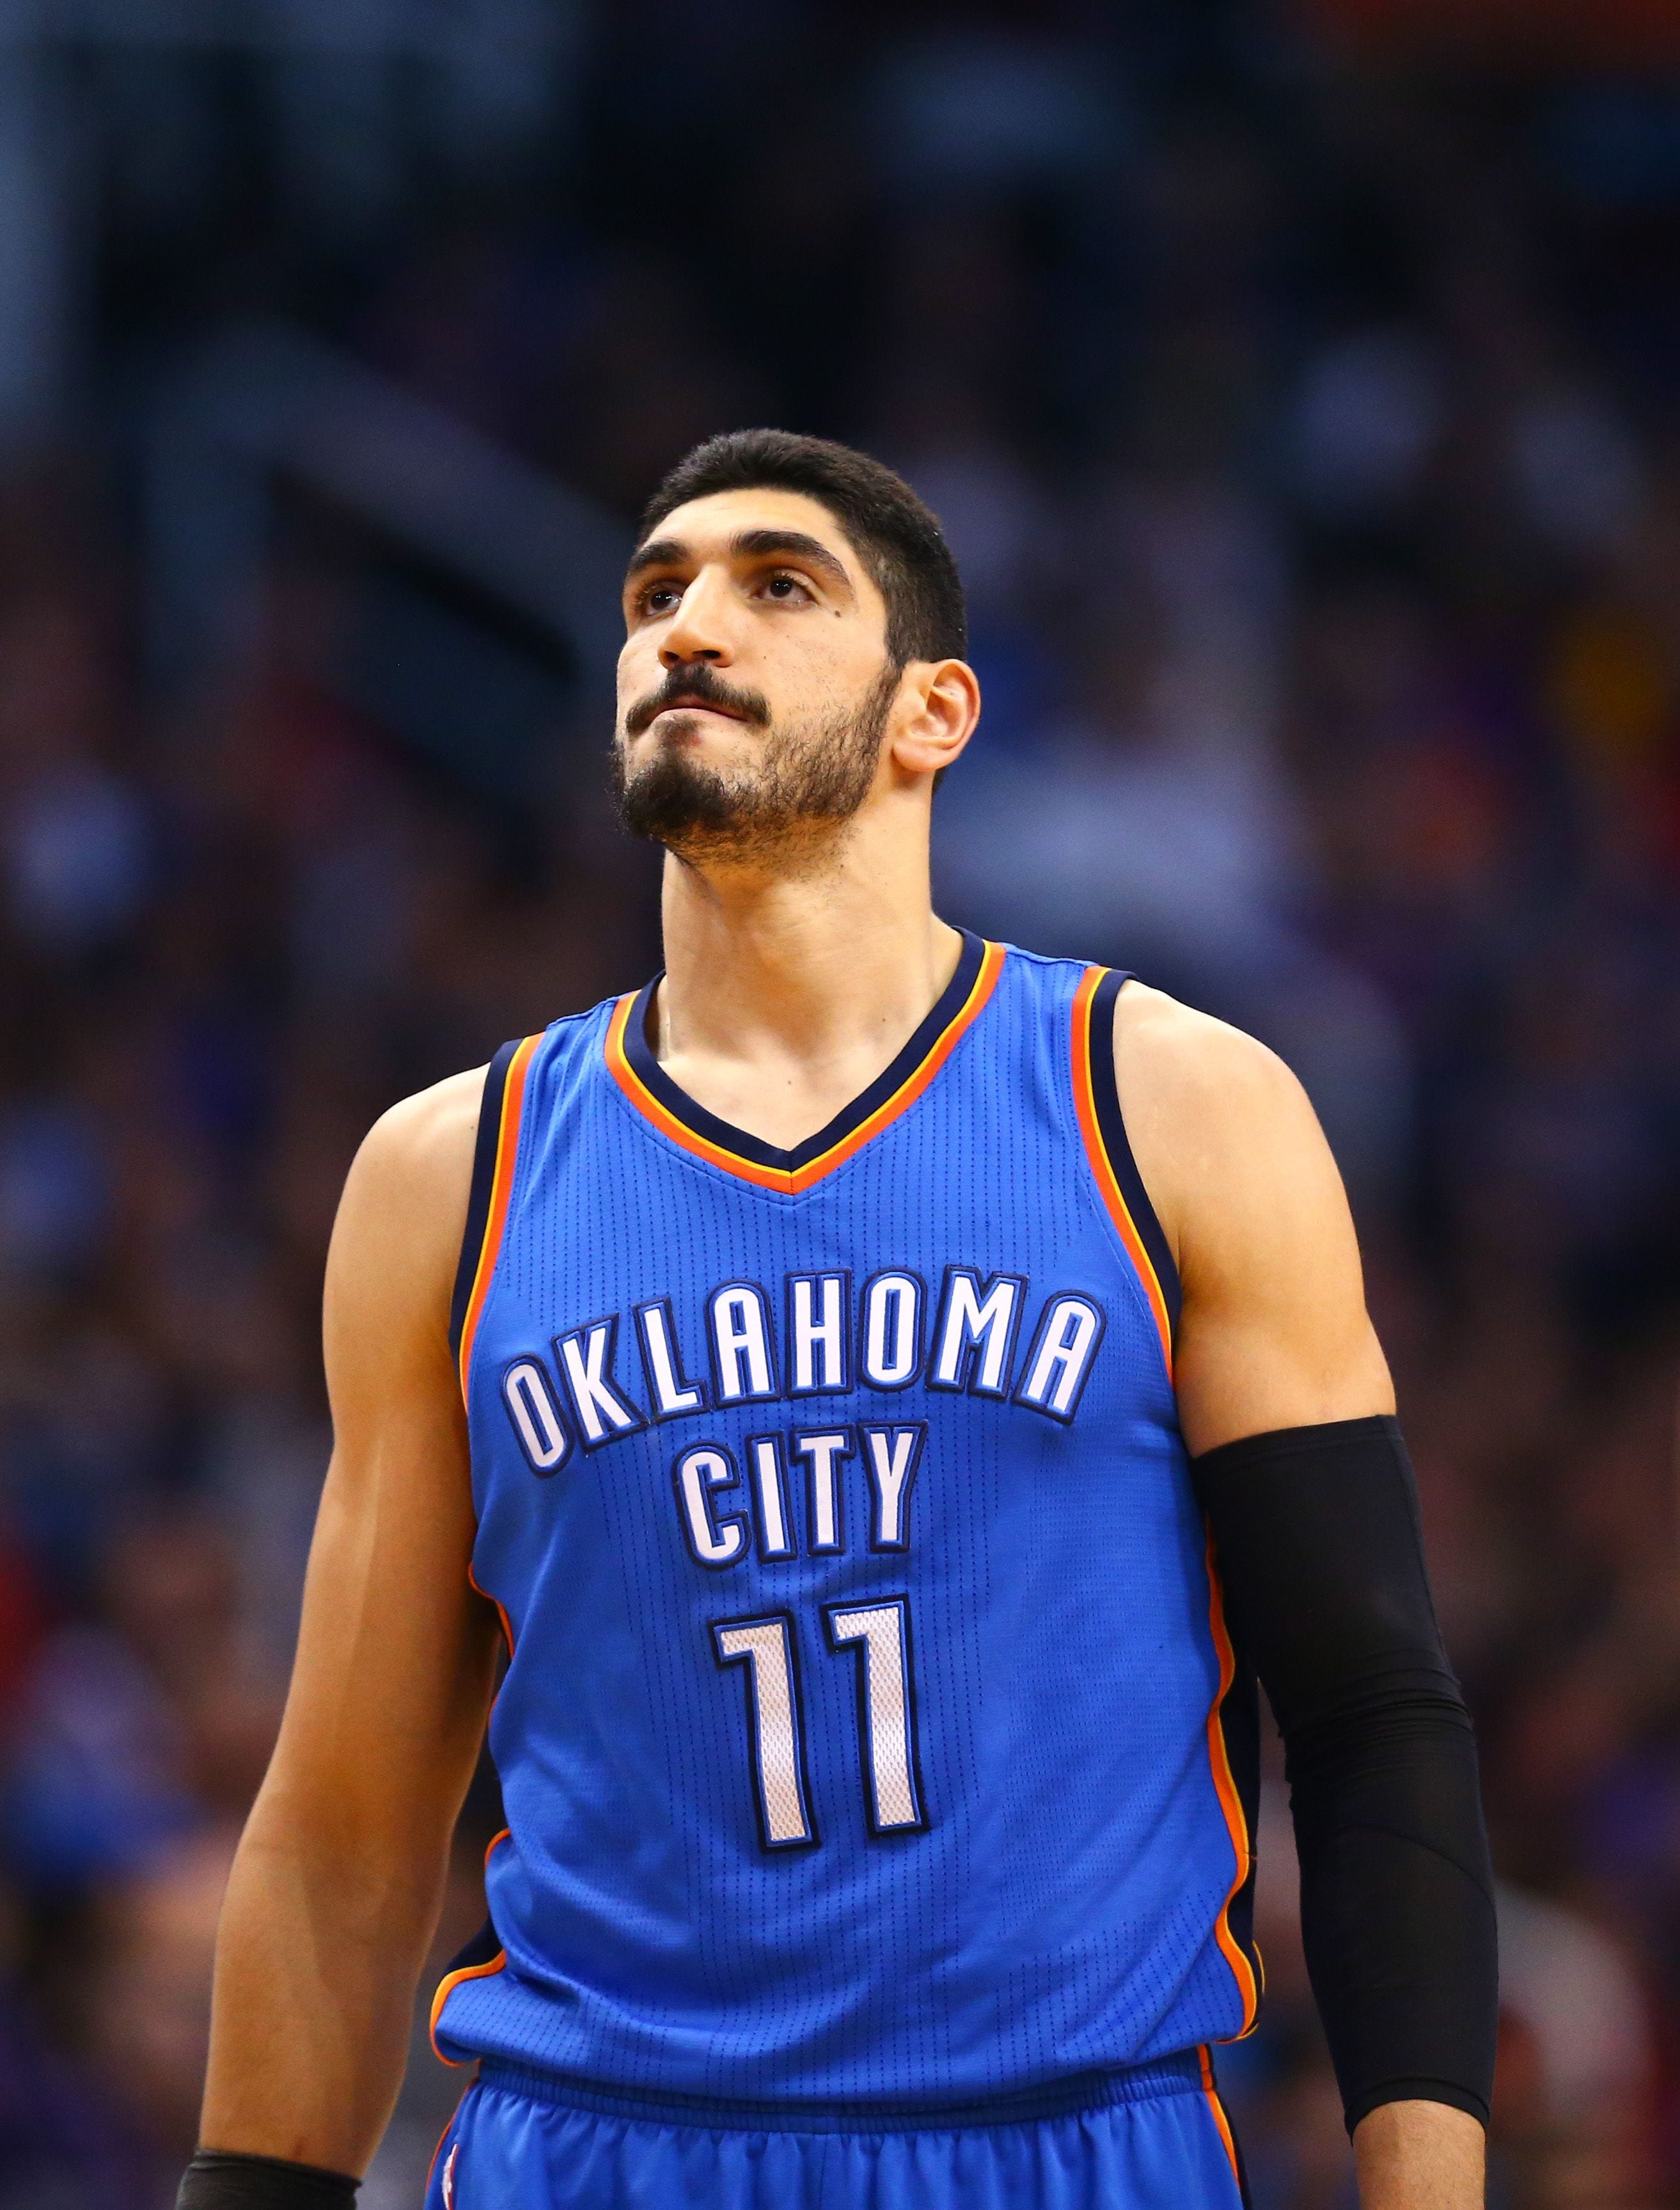 Report: Enes Kanter of Oklahoma City Thunder faces arrest warrant issued in Turkey